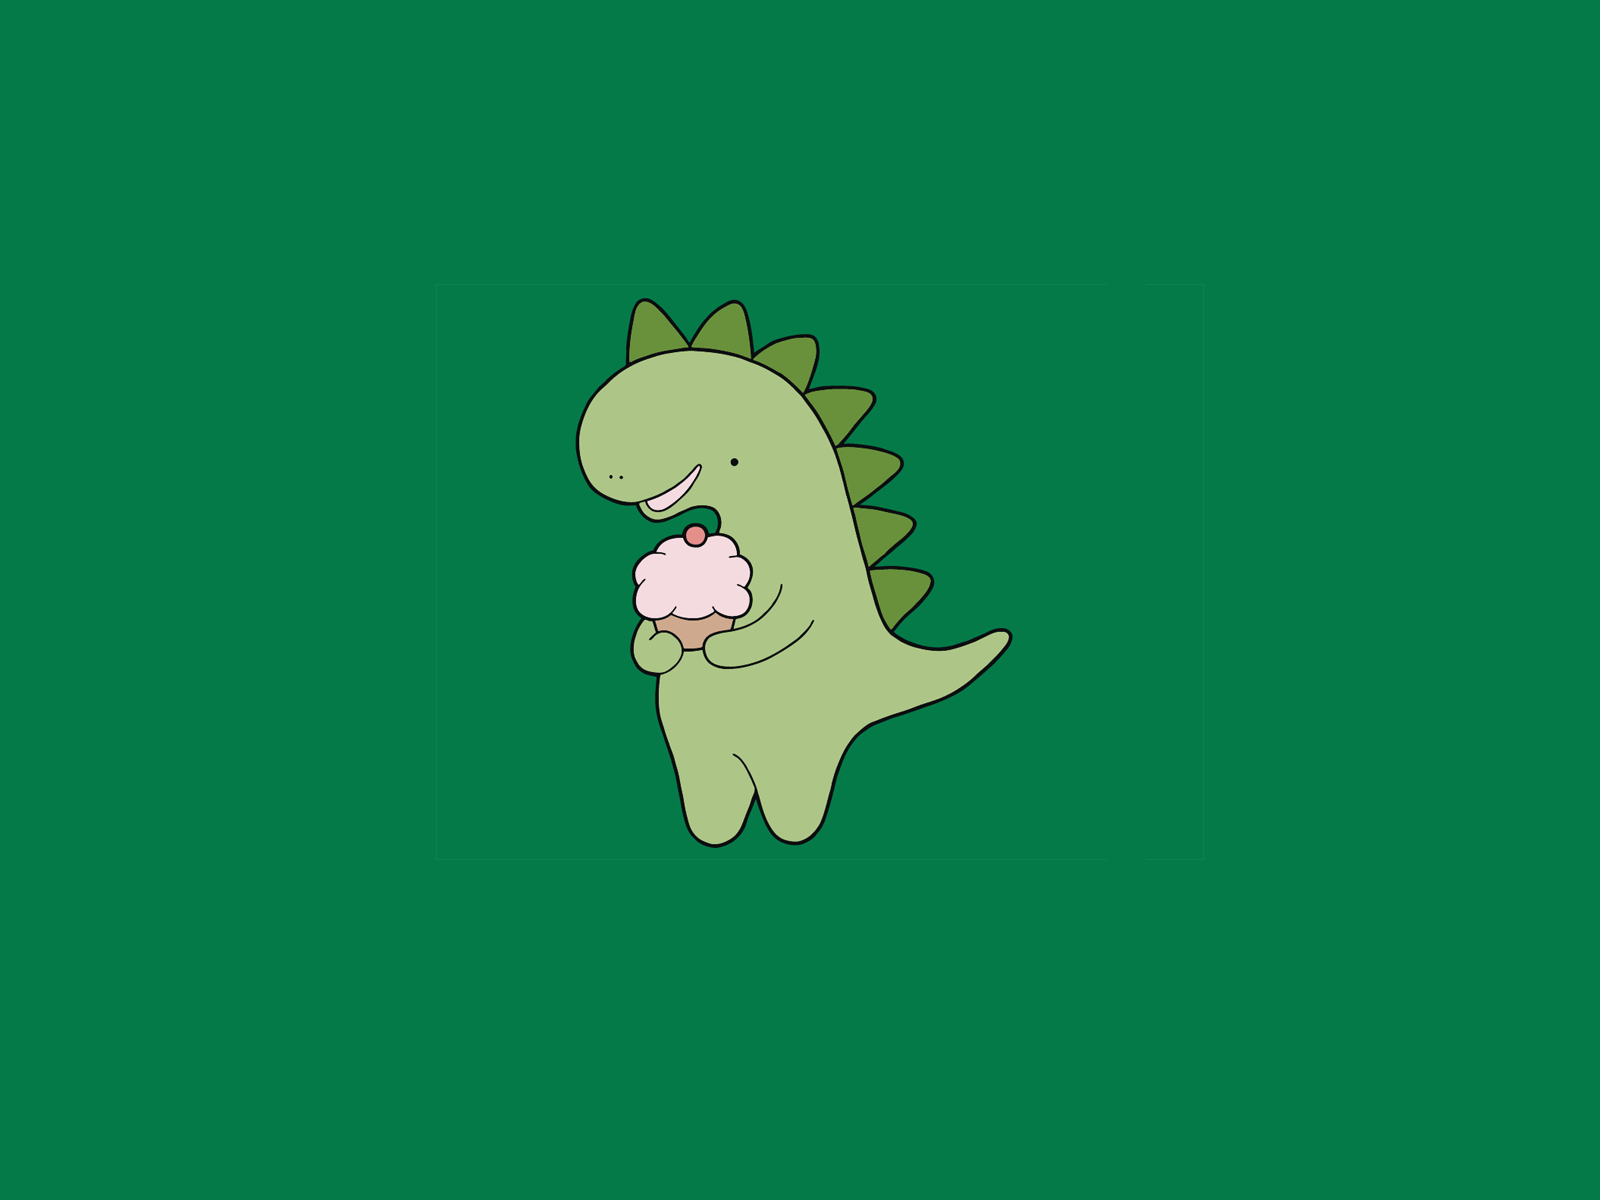 green dino aesthetic wallpapers